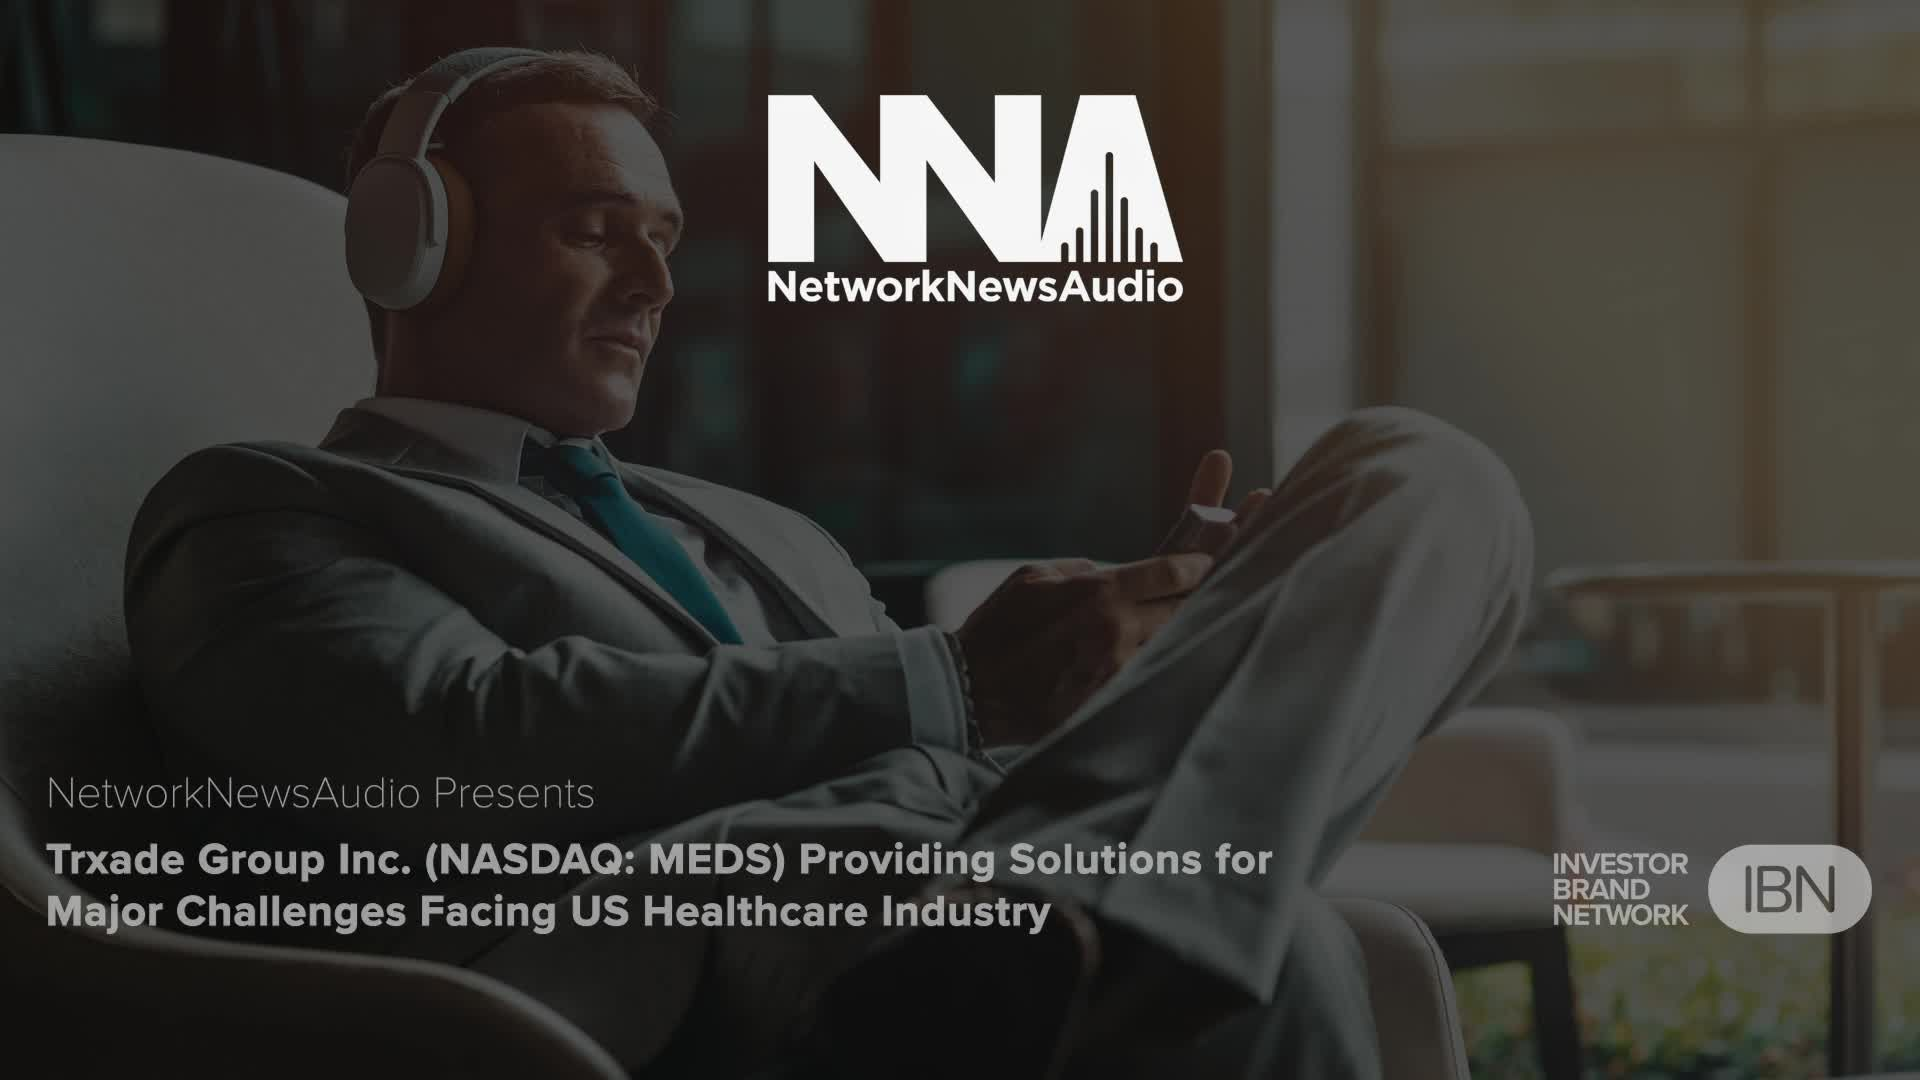 Trxade Group Inc. (NASDAQ: MEDS) Providing Solutions for Major Challenges Facing US Healthcare Industry